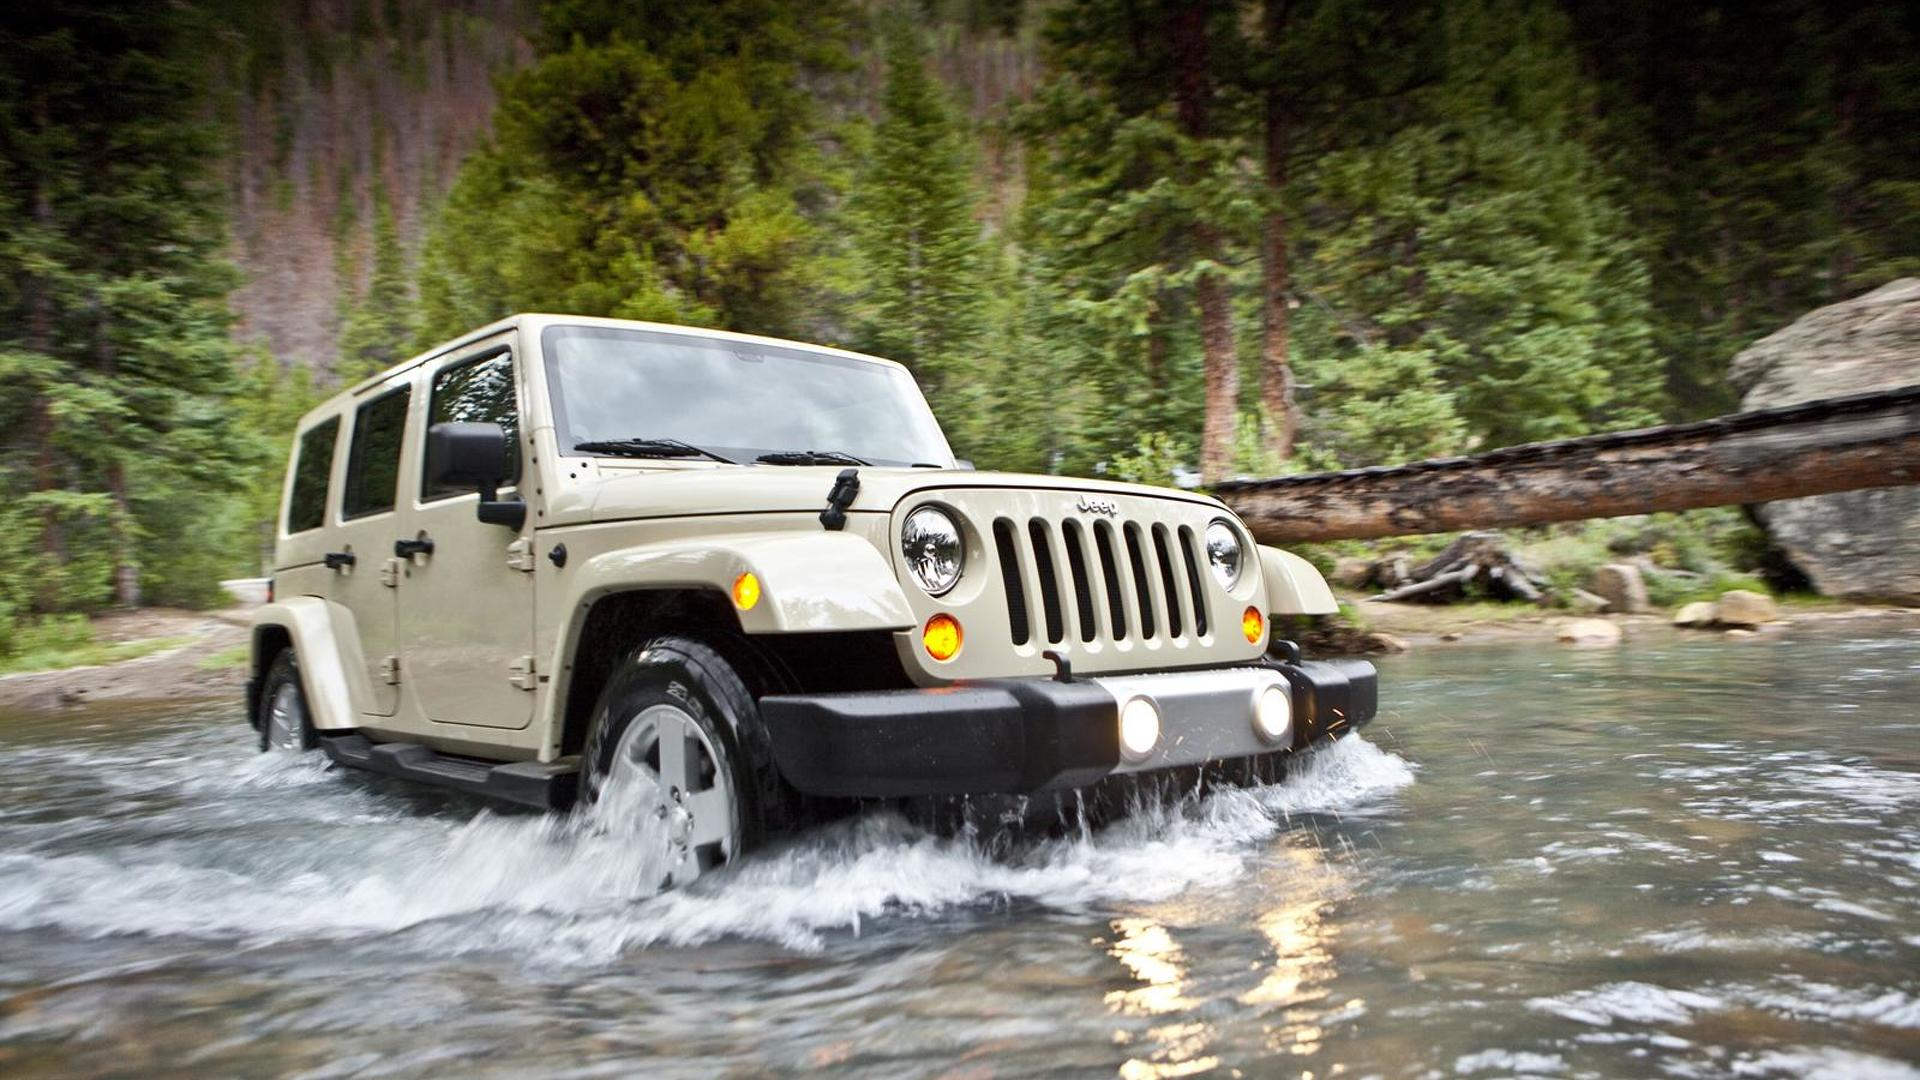 Sergio Marchionne says next Jeep Wrangler will be lighter, Alfa Romeo lineup to grow in 2015